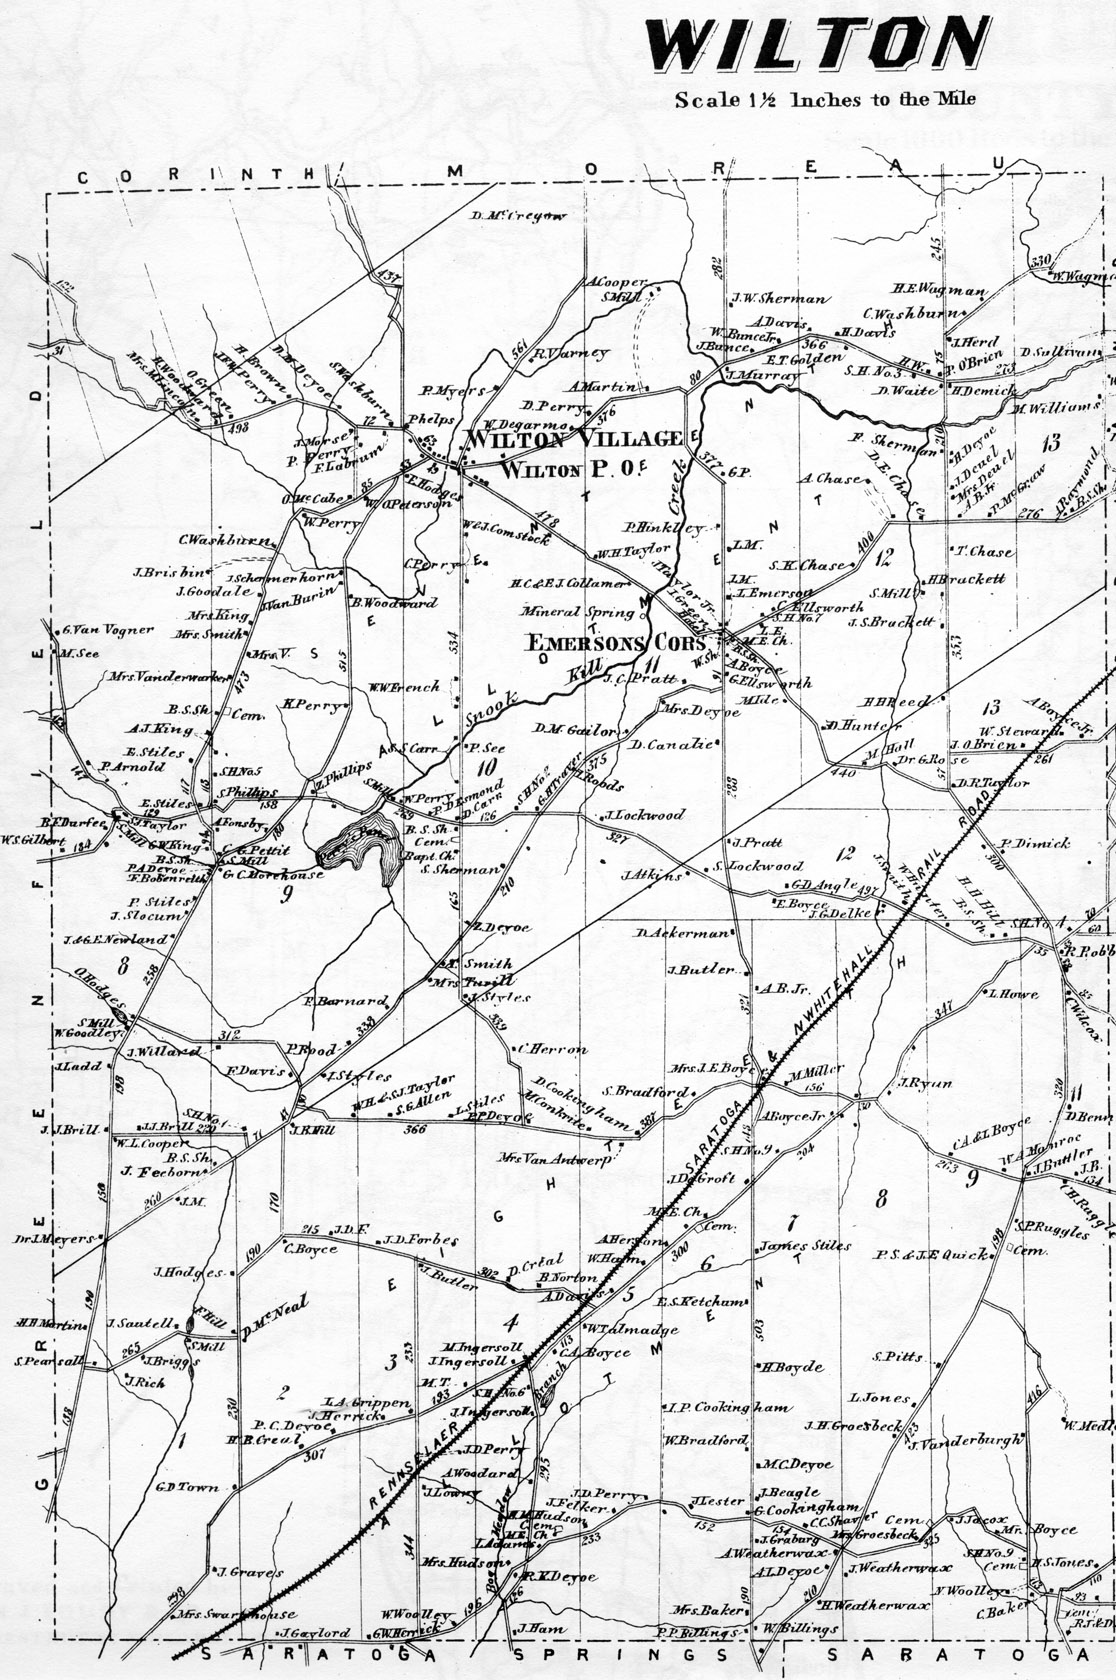 map of south jersey towns.html with Map Of Ct Towns on Map Of Illinois With Cities And Towns further Large Detailed Tourist Map Of Wyoming With Cities And Towns as well Large Detailed Tourist Map Of Pennsylvania With Cities And Towns together with Map Of Ct Towns together with Large Detailed Map Of Maine With Cities And Towns.